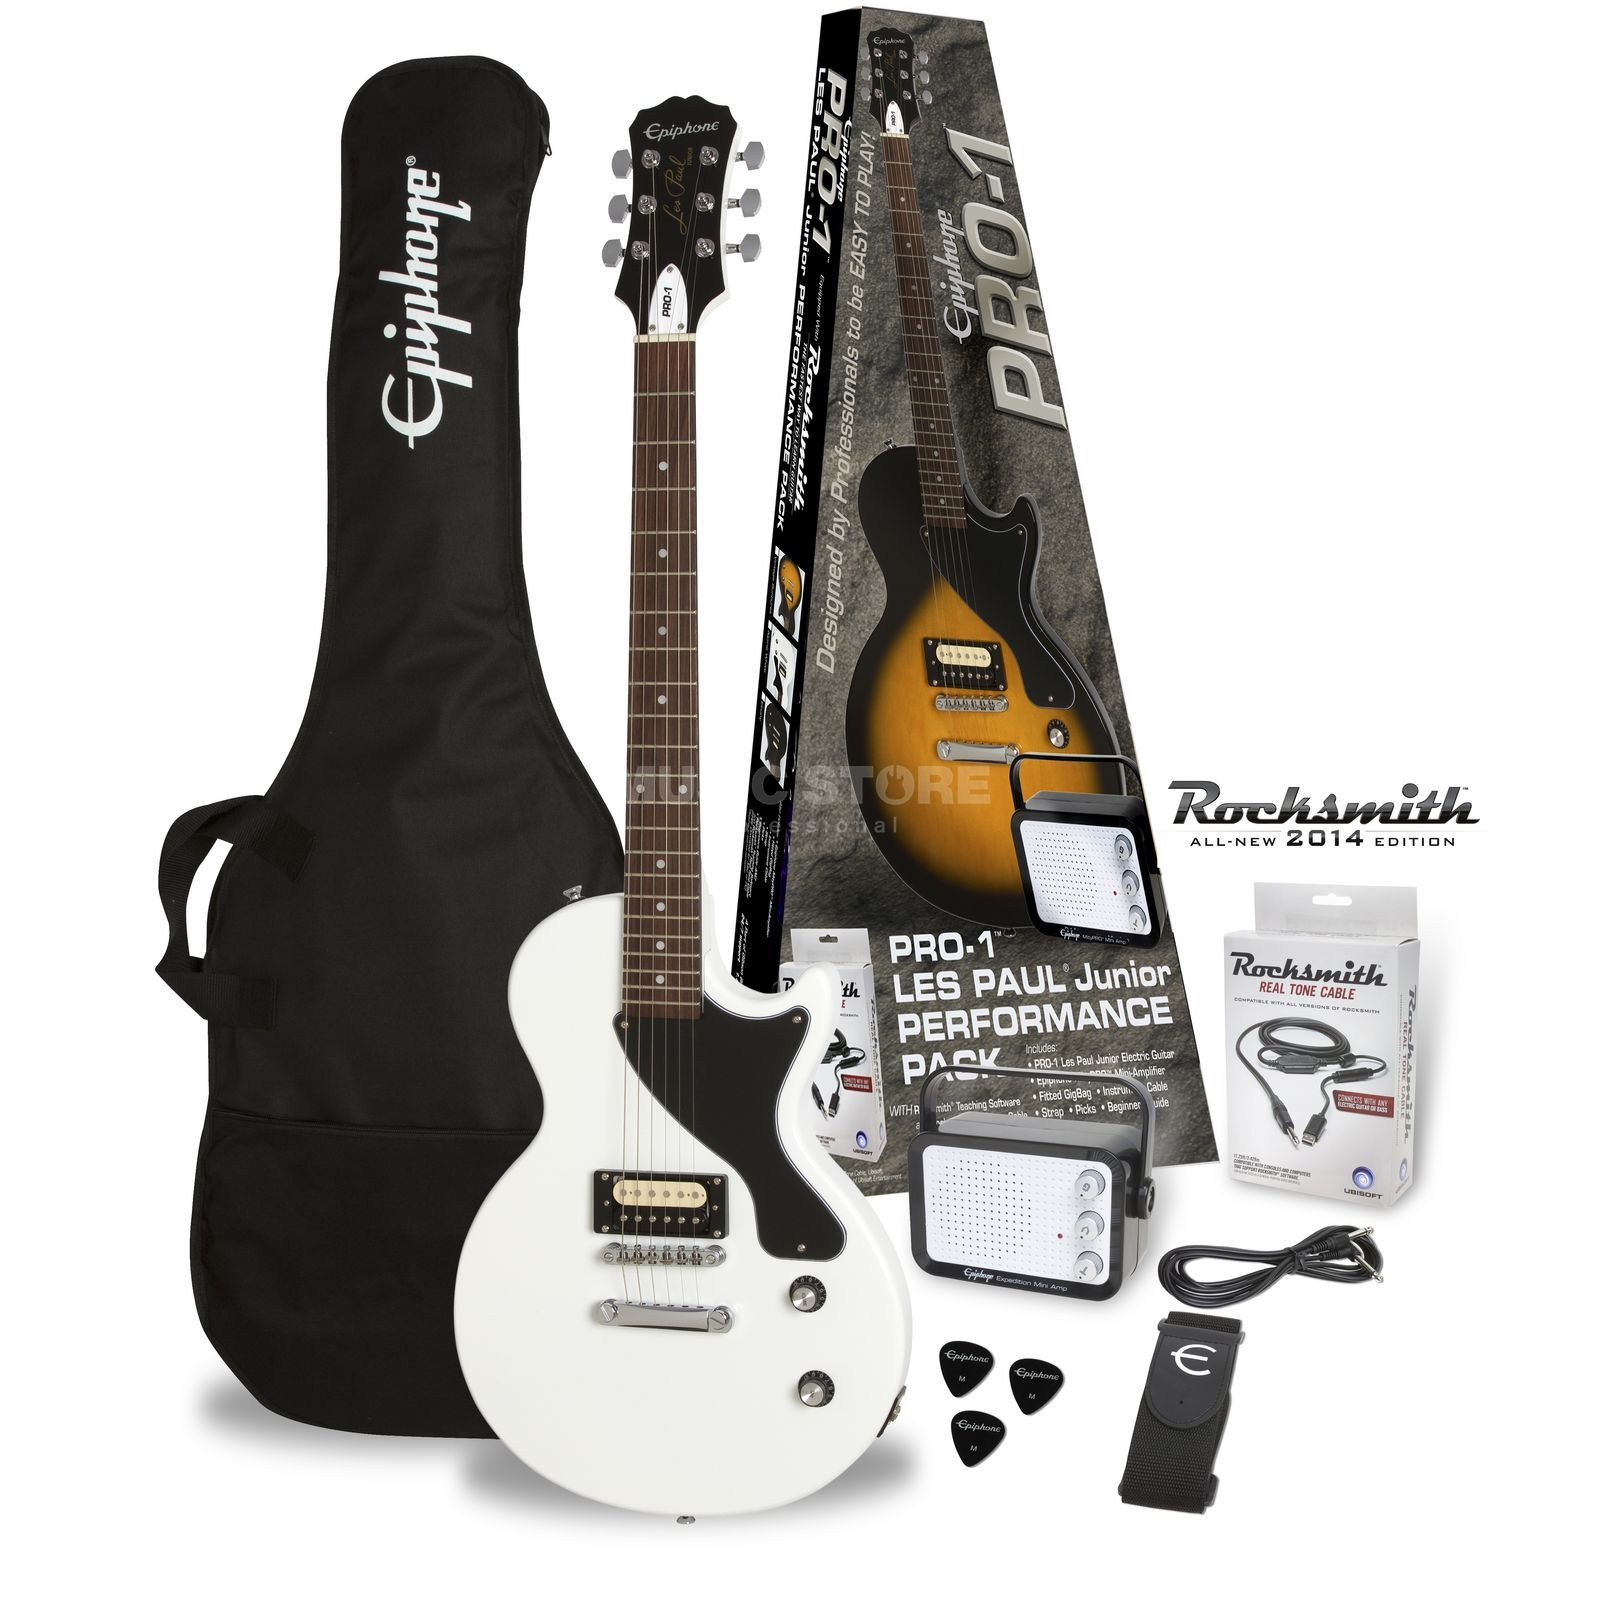 Epiphone PRO-1 Les Paul Junior Performance Pack Alpine White Изображение товара